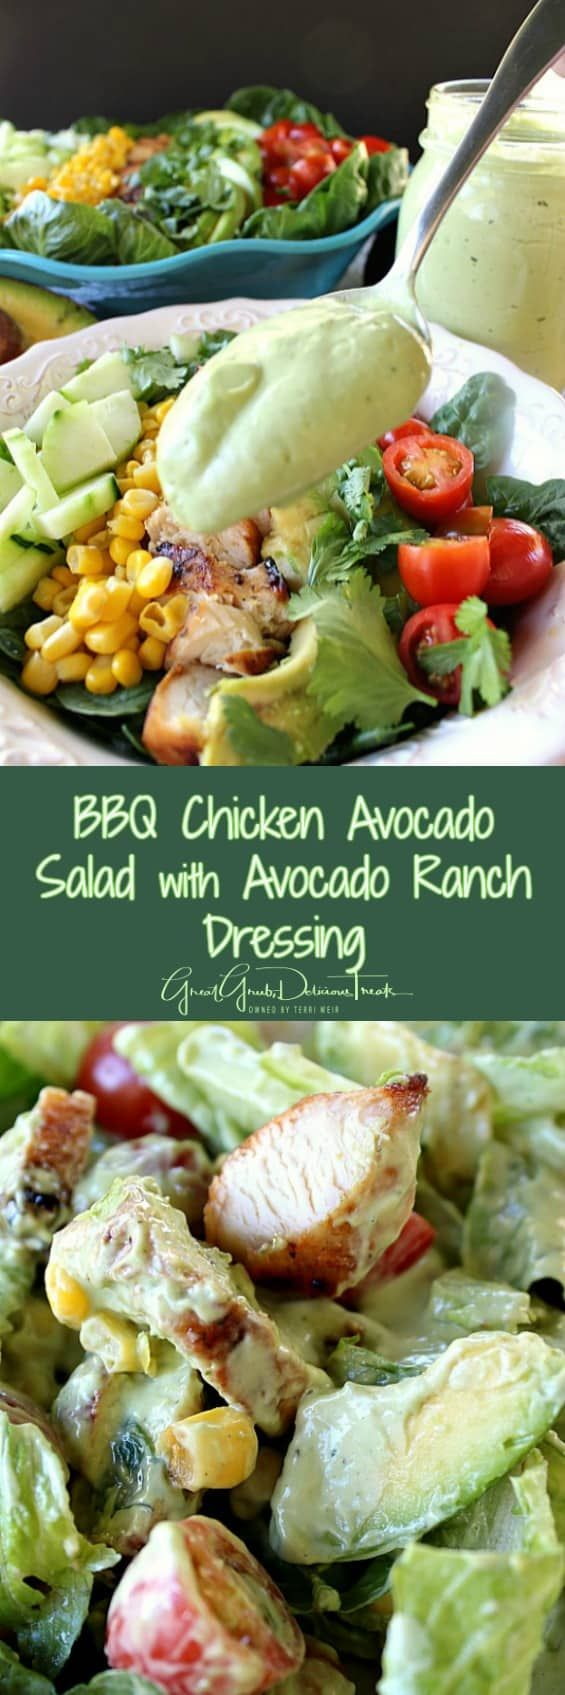 BBQ Chicken Avocado Salad with Avocado Ranch Dressing - Great Grub, Delicious Treats